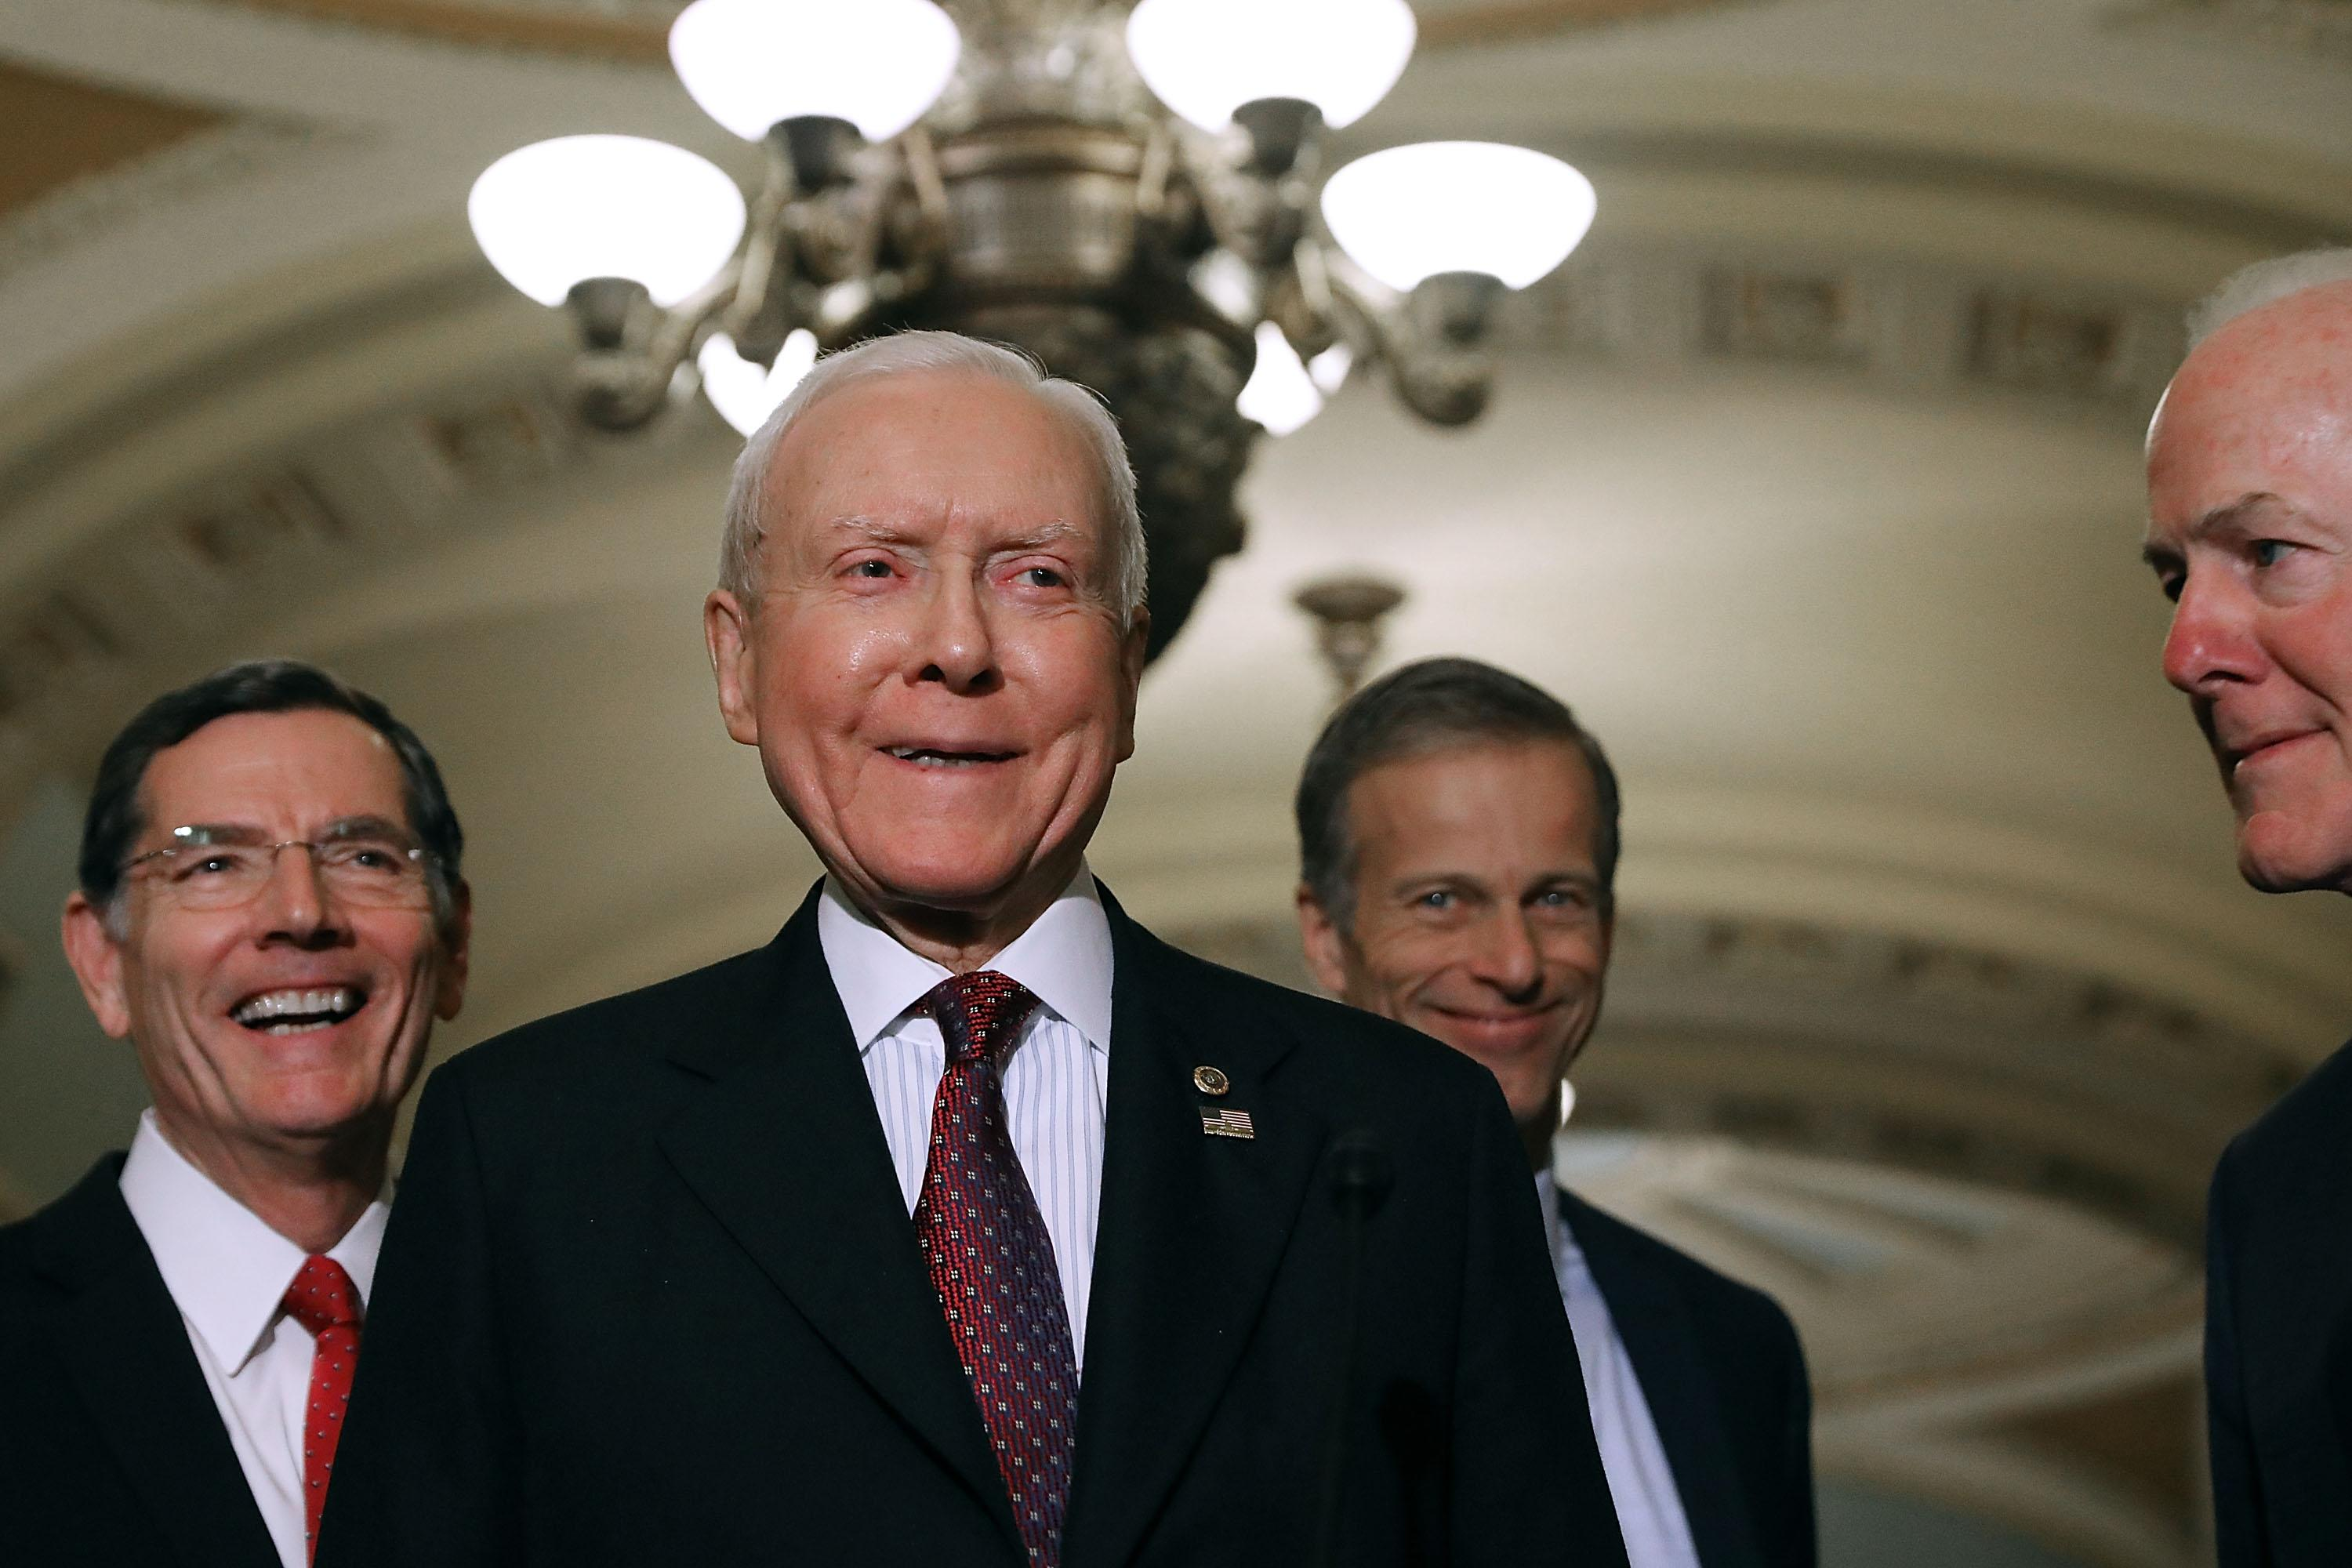 Sen. Hatch calls Affordable Care Act supporters 'stupid,' 'dumbass' people